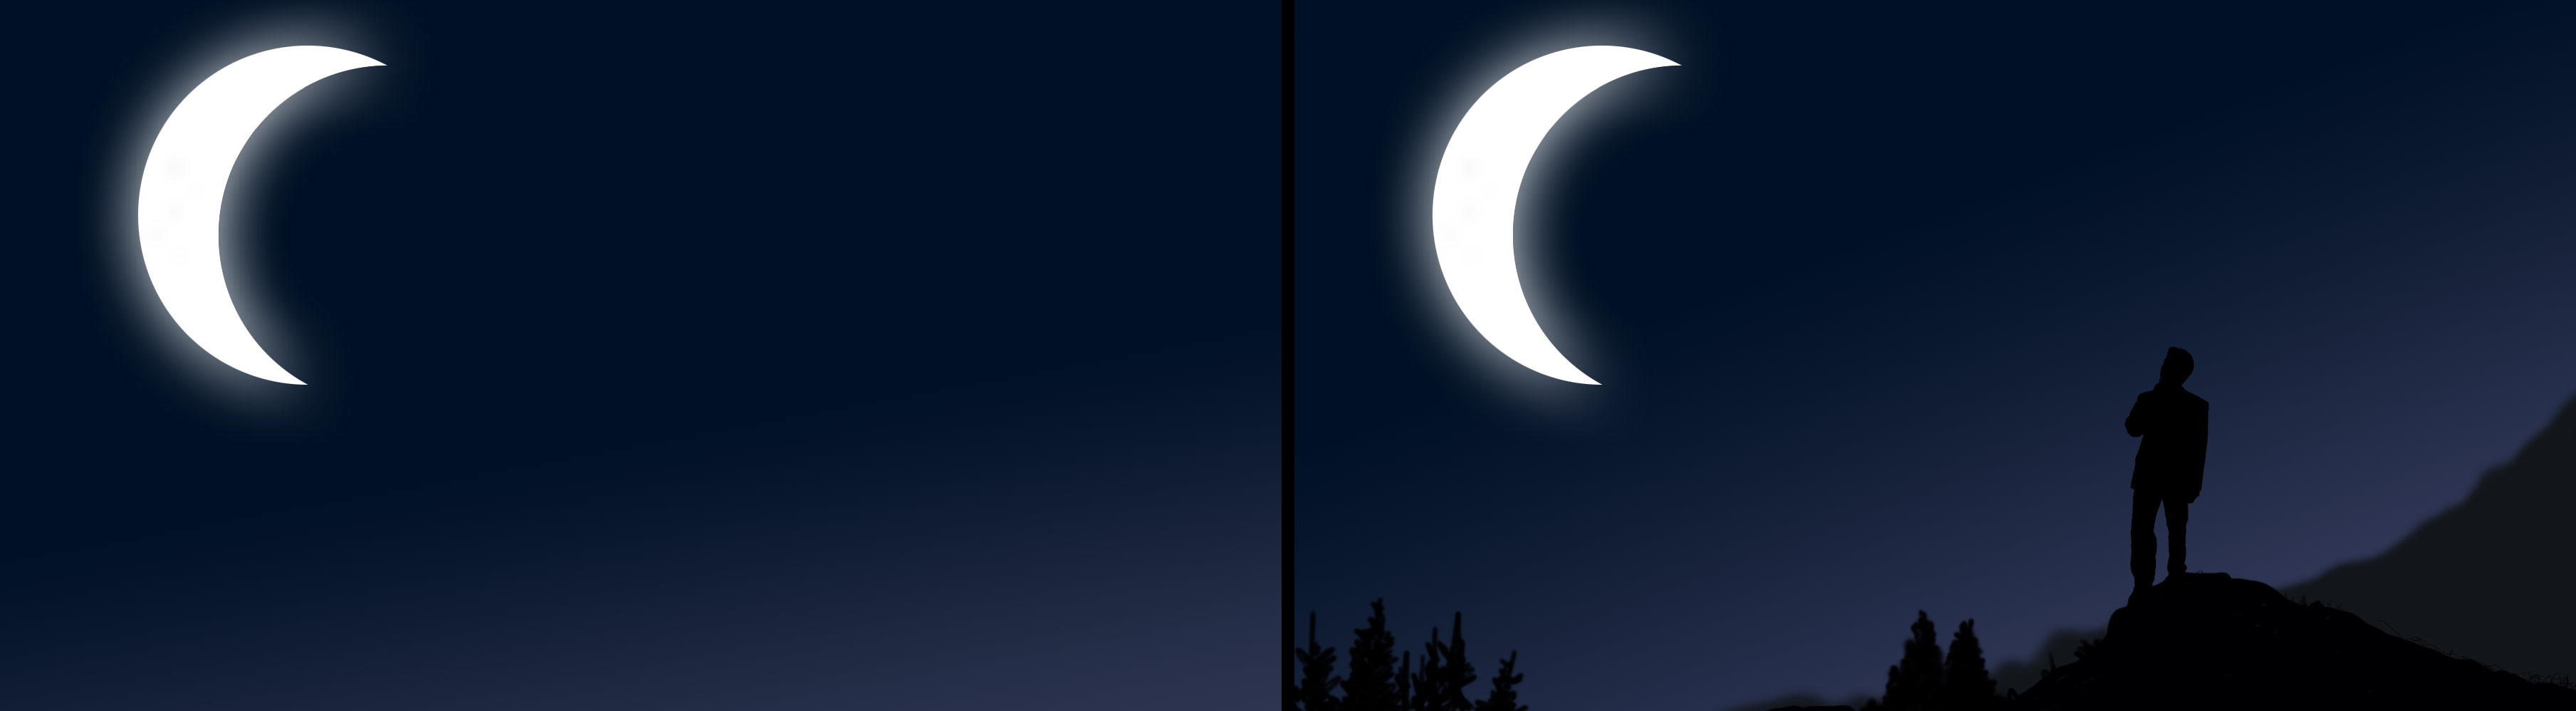 illustrations of photos with moon in background